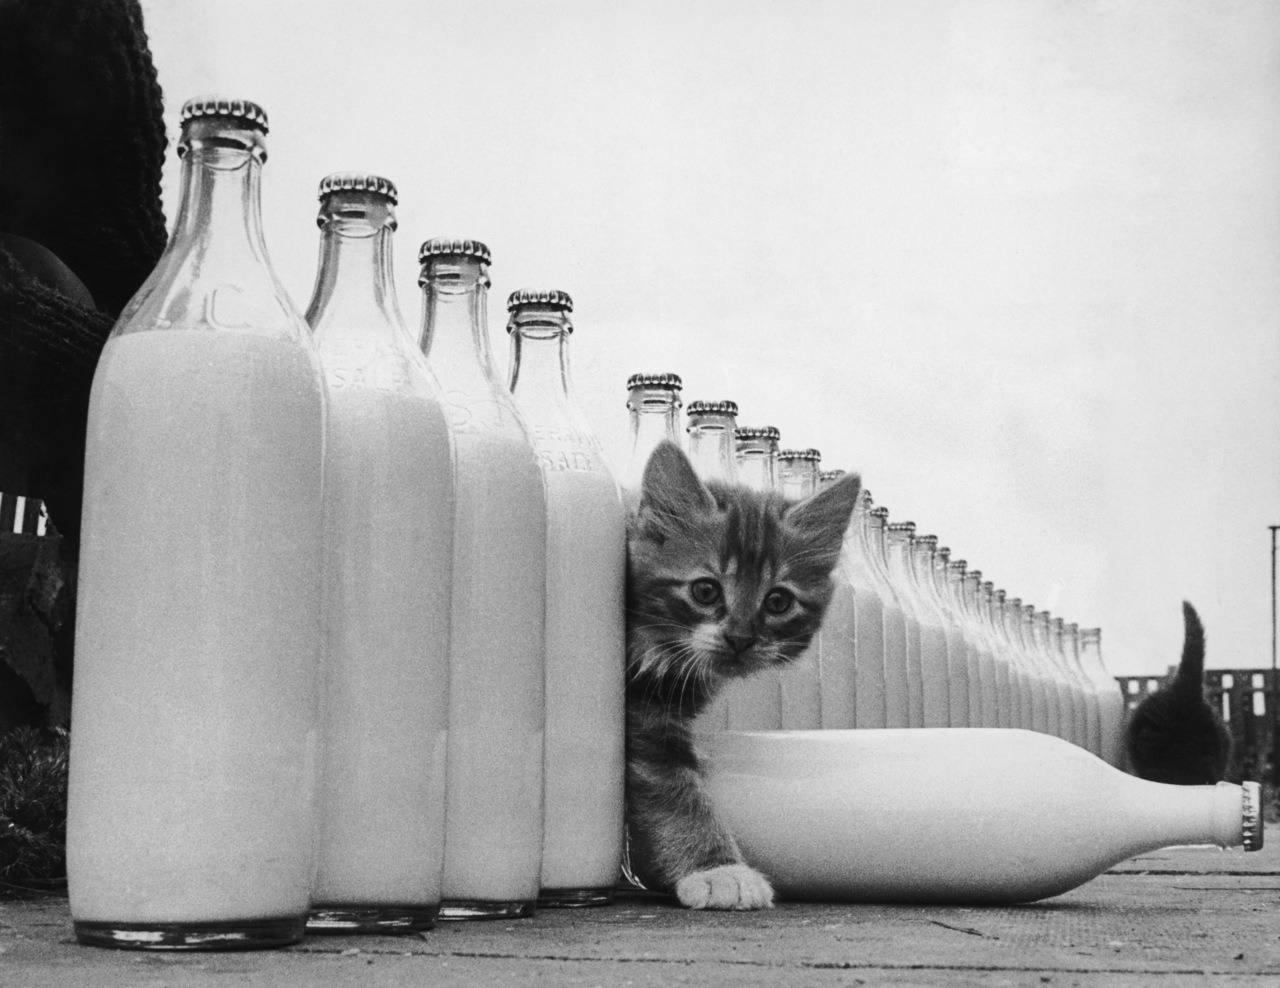 A kitten is surrounded by milk bottles bigger than he is.